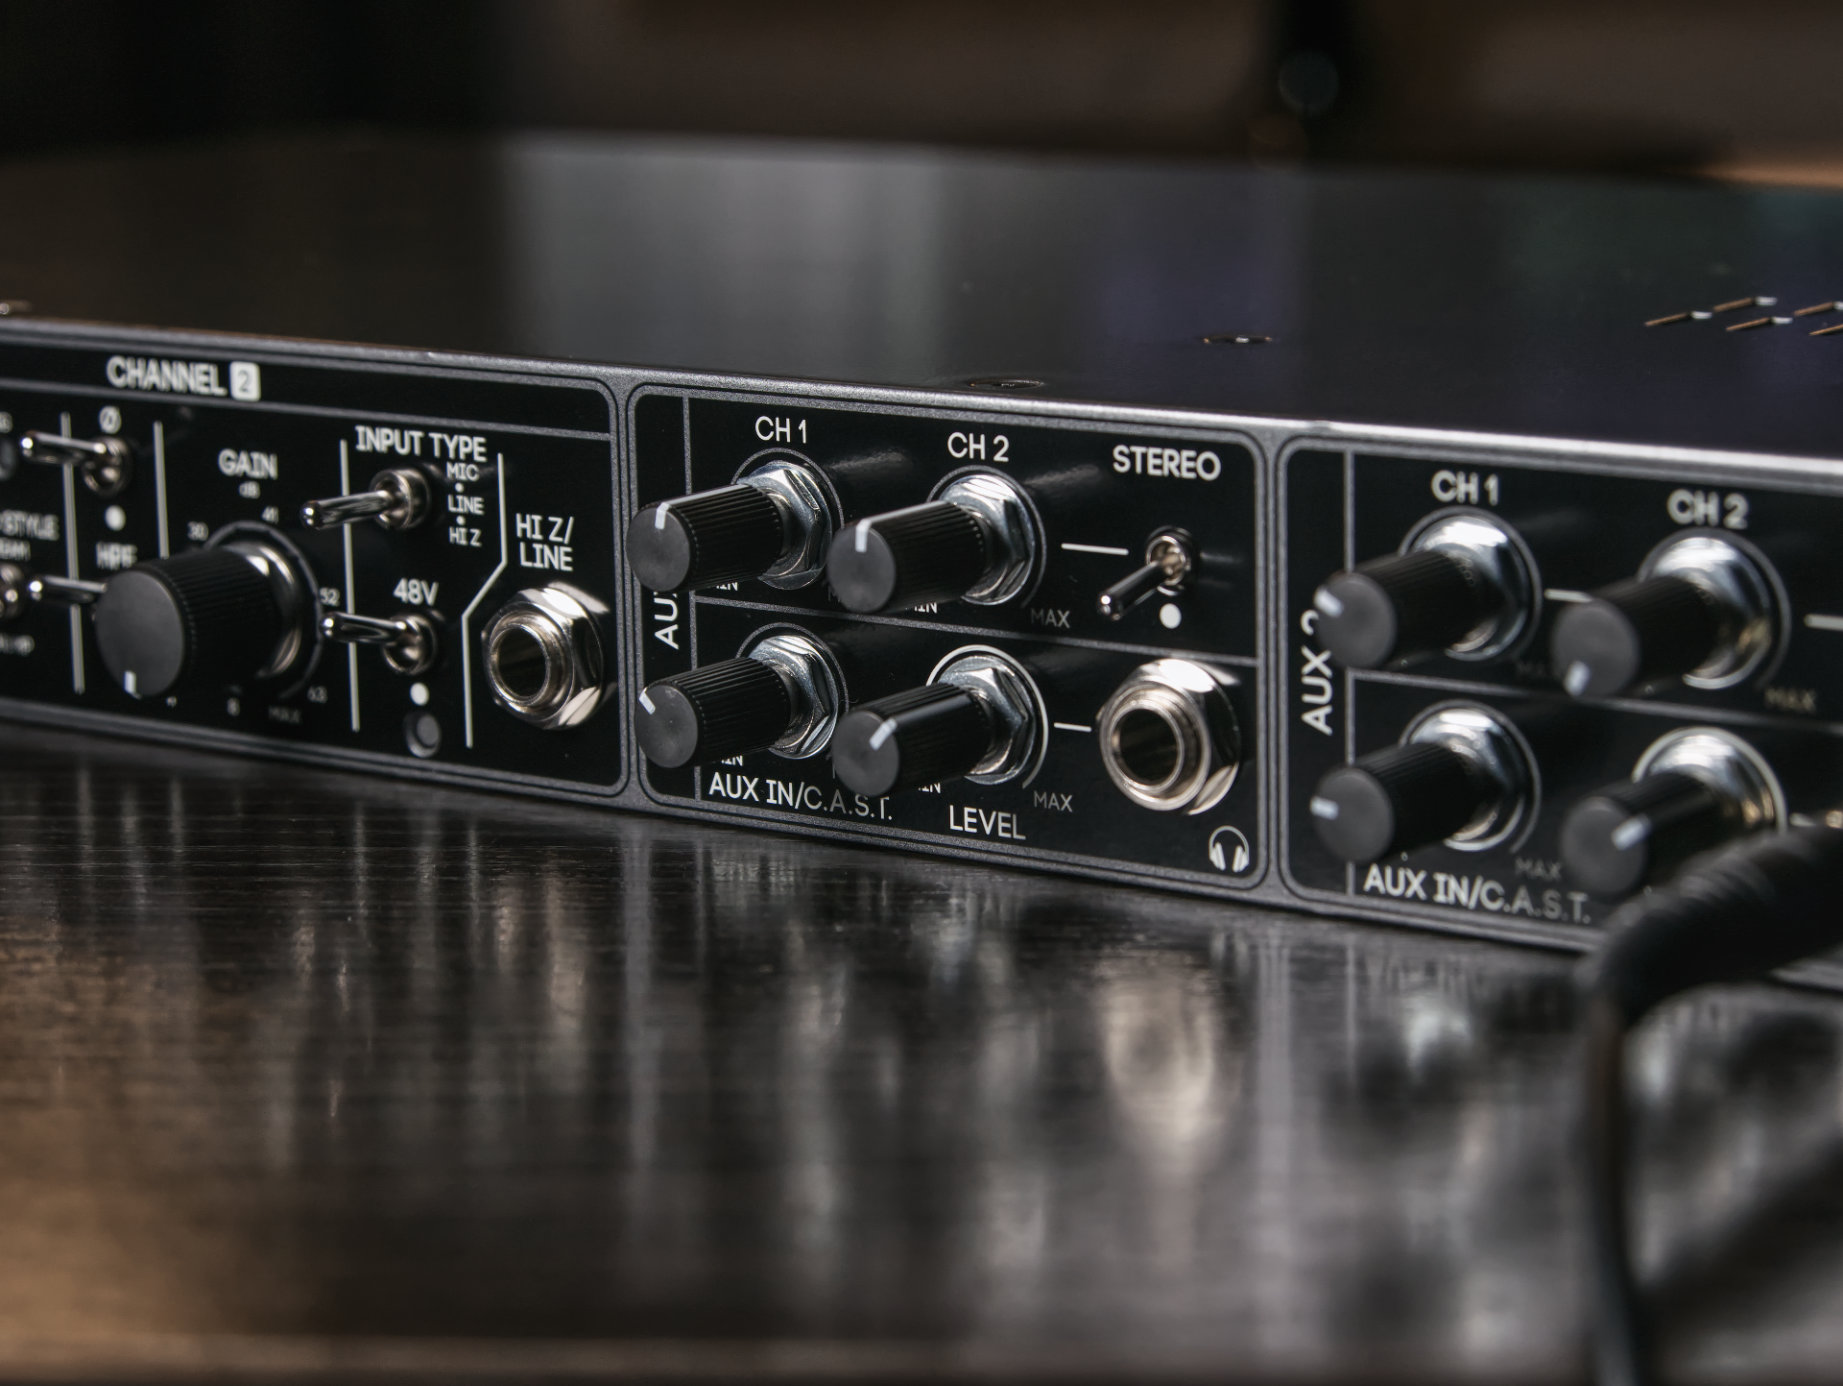 Ec2 headphone amps